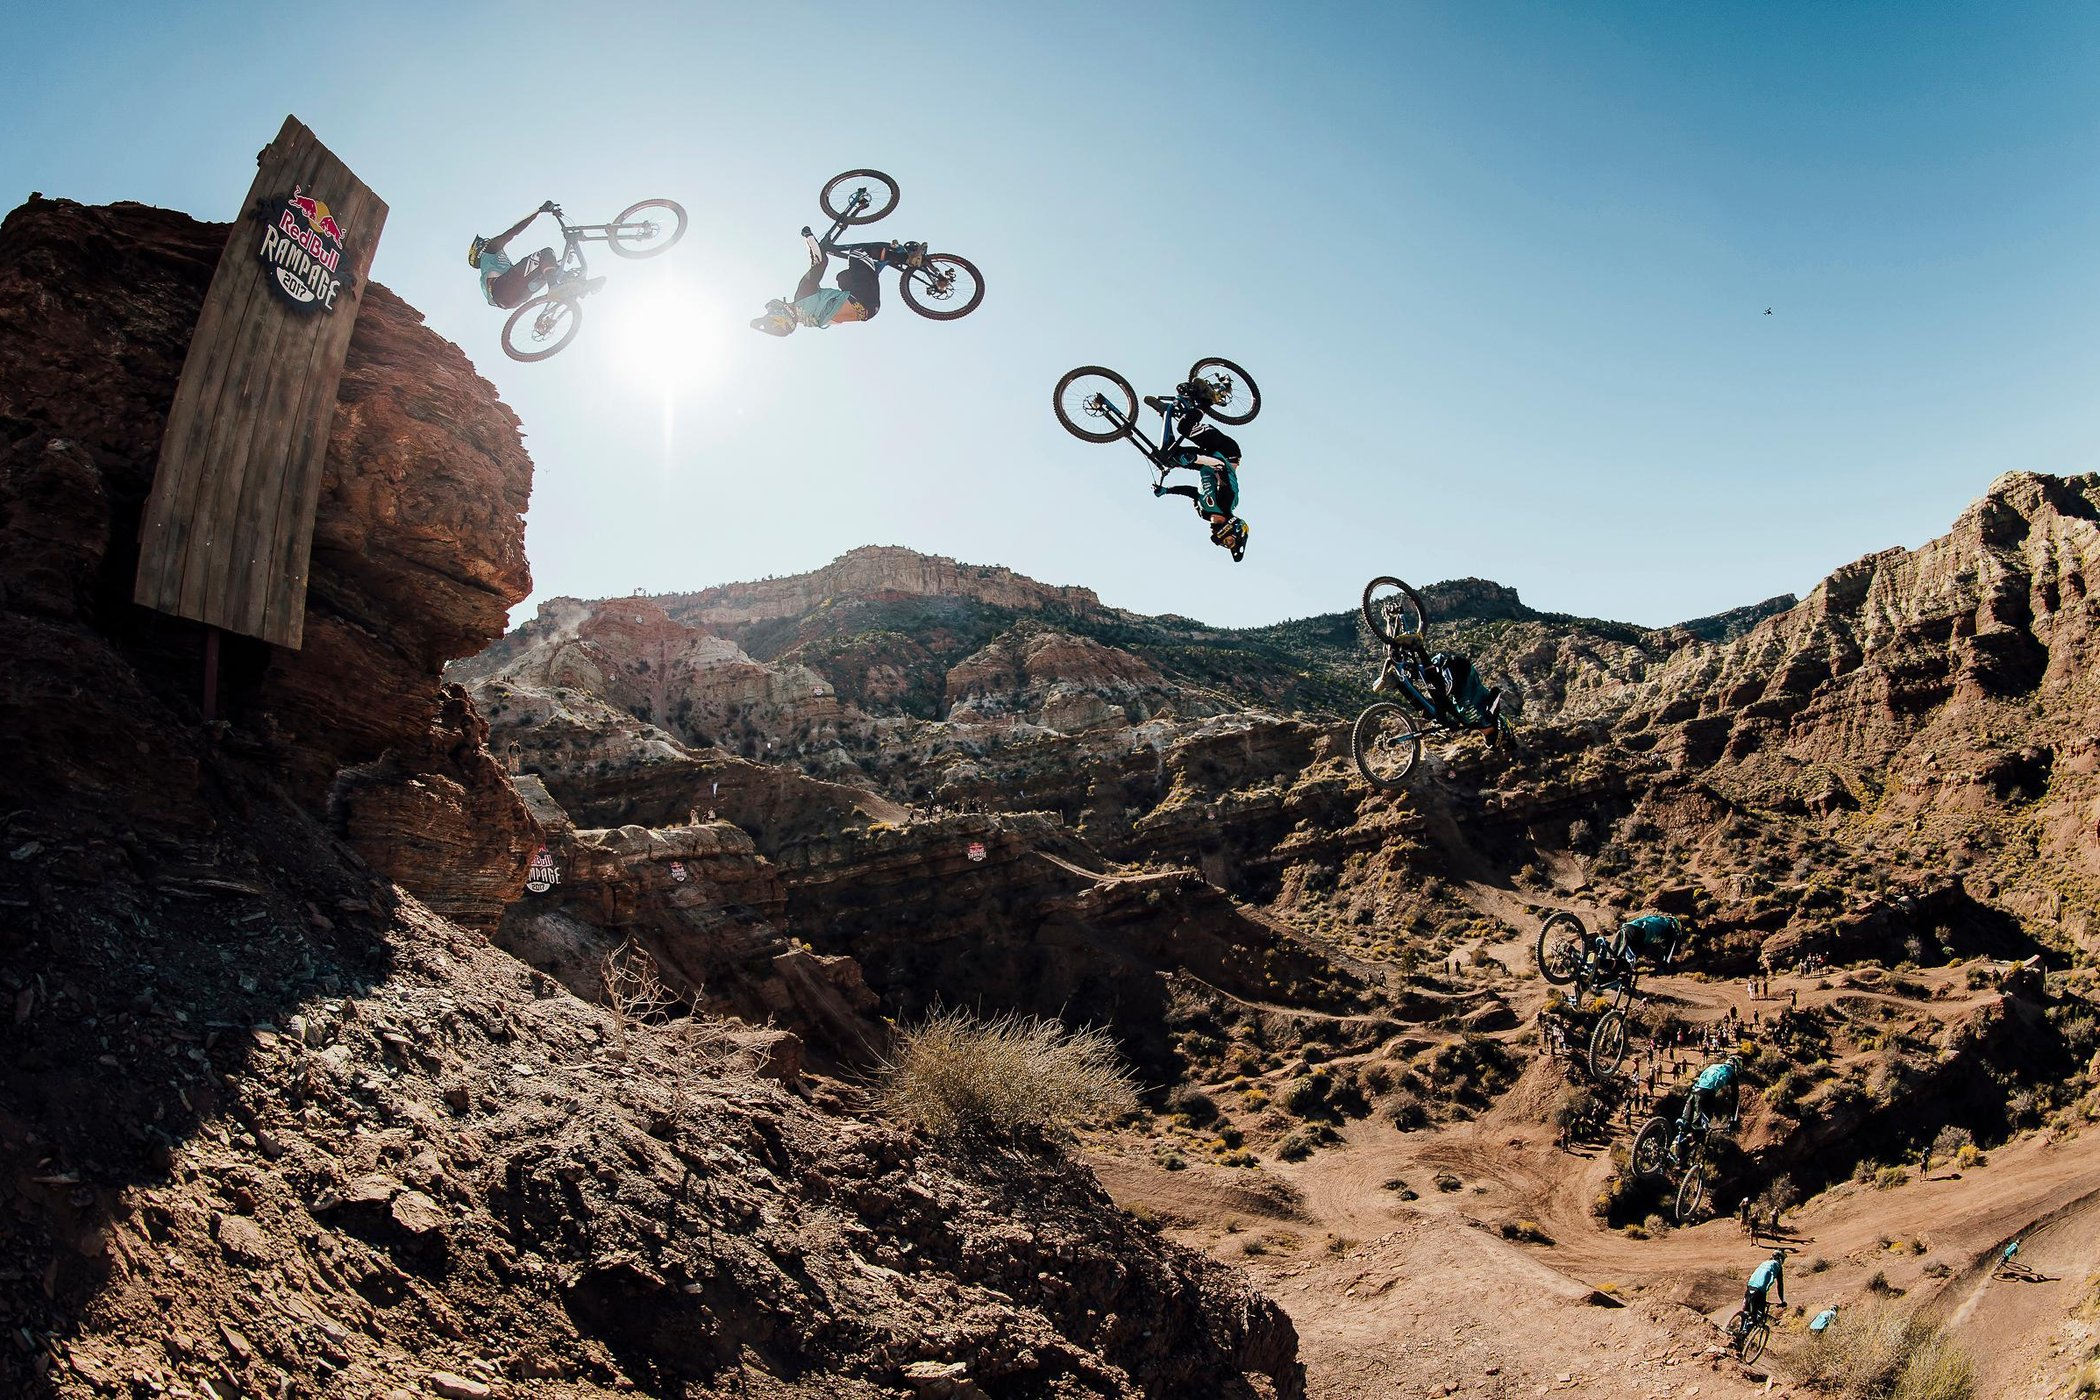 Red Bull Mountain Bike >> How To Watch Red Bull Rampage 2018 Mountain Biking Live Gearjunkie